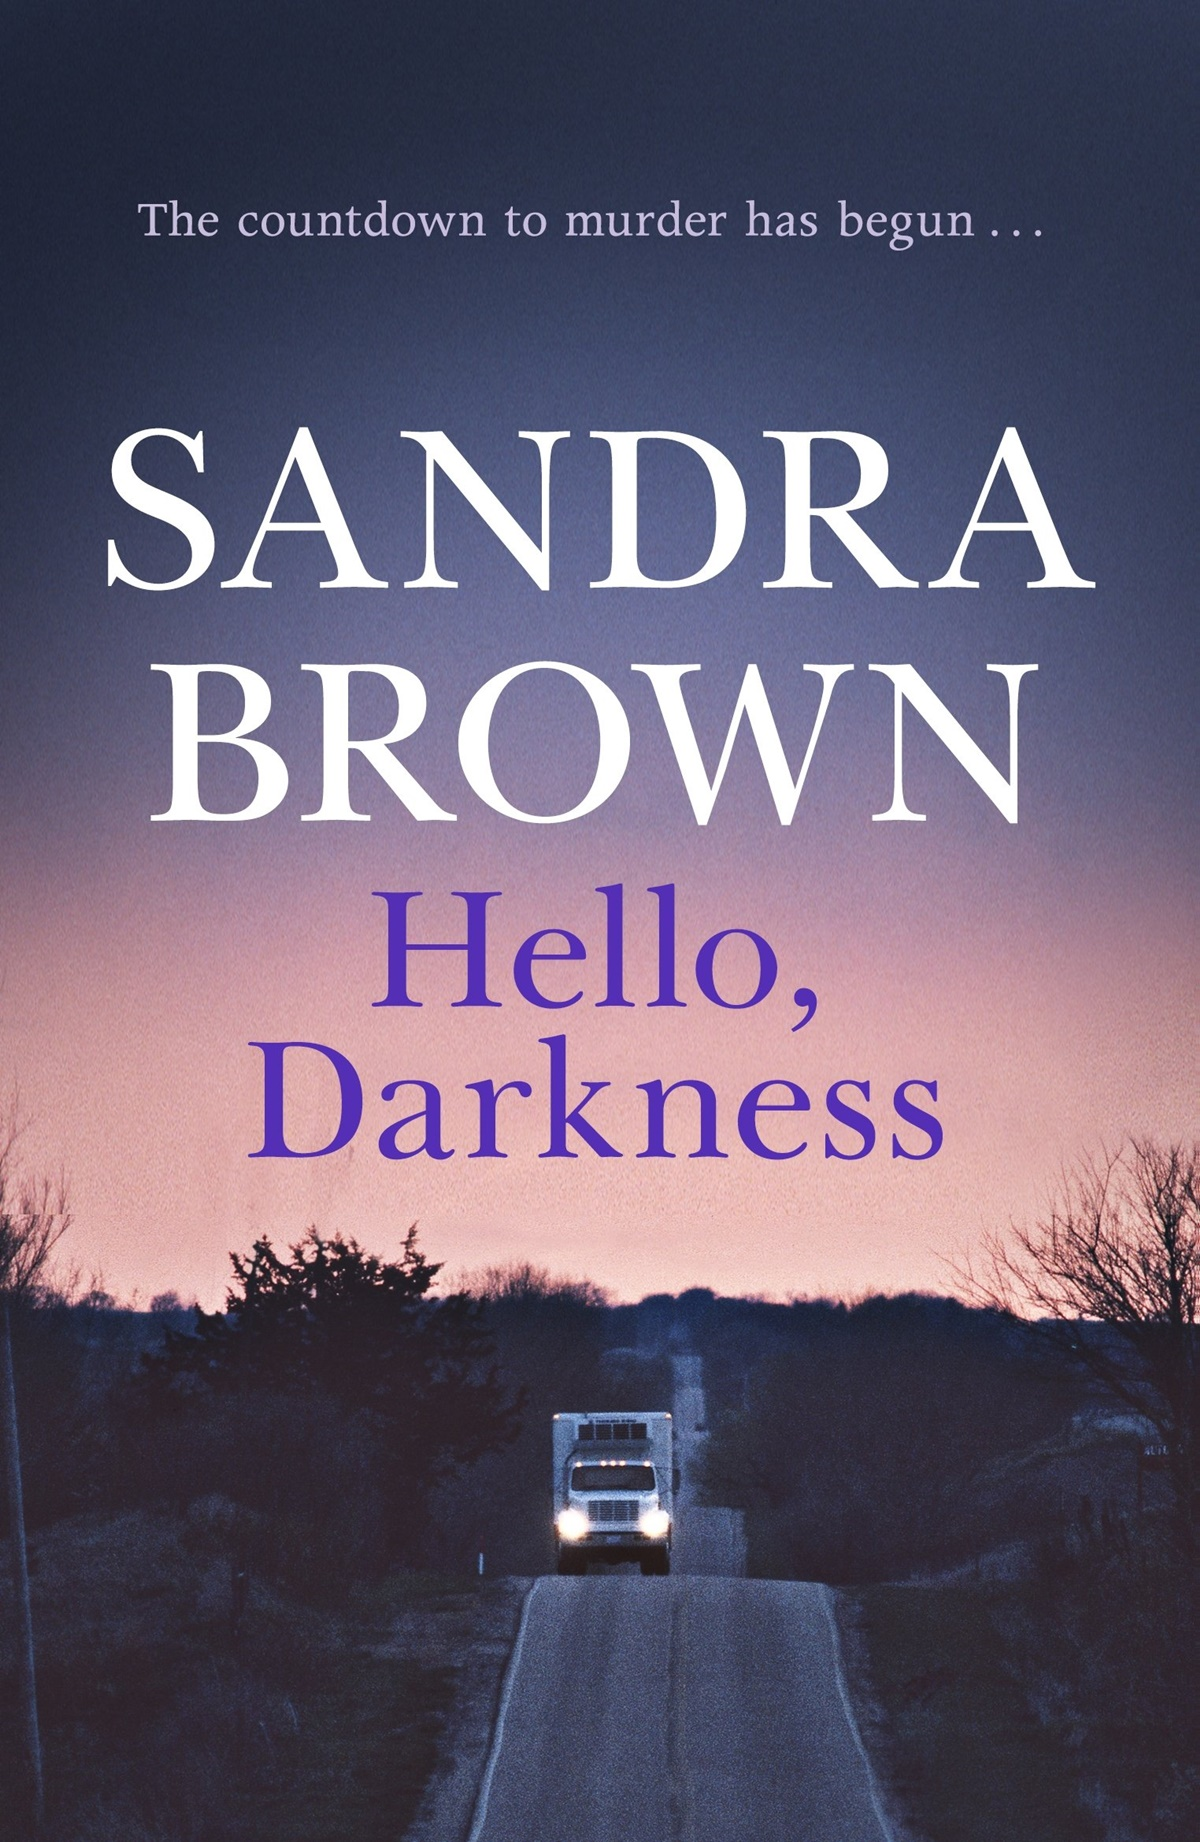 Sandra Brown Books, cover of Hello Darkness by Sandra Brown, books